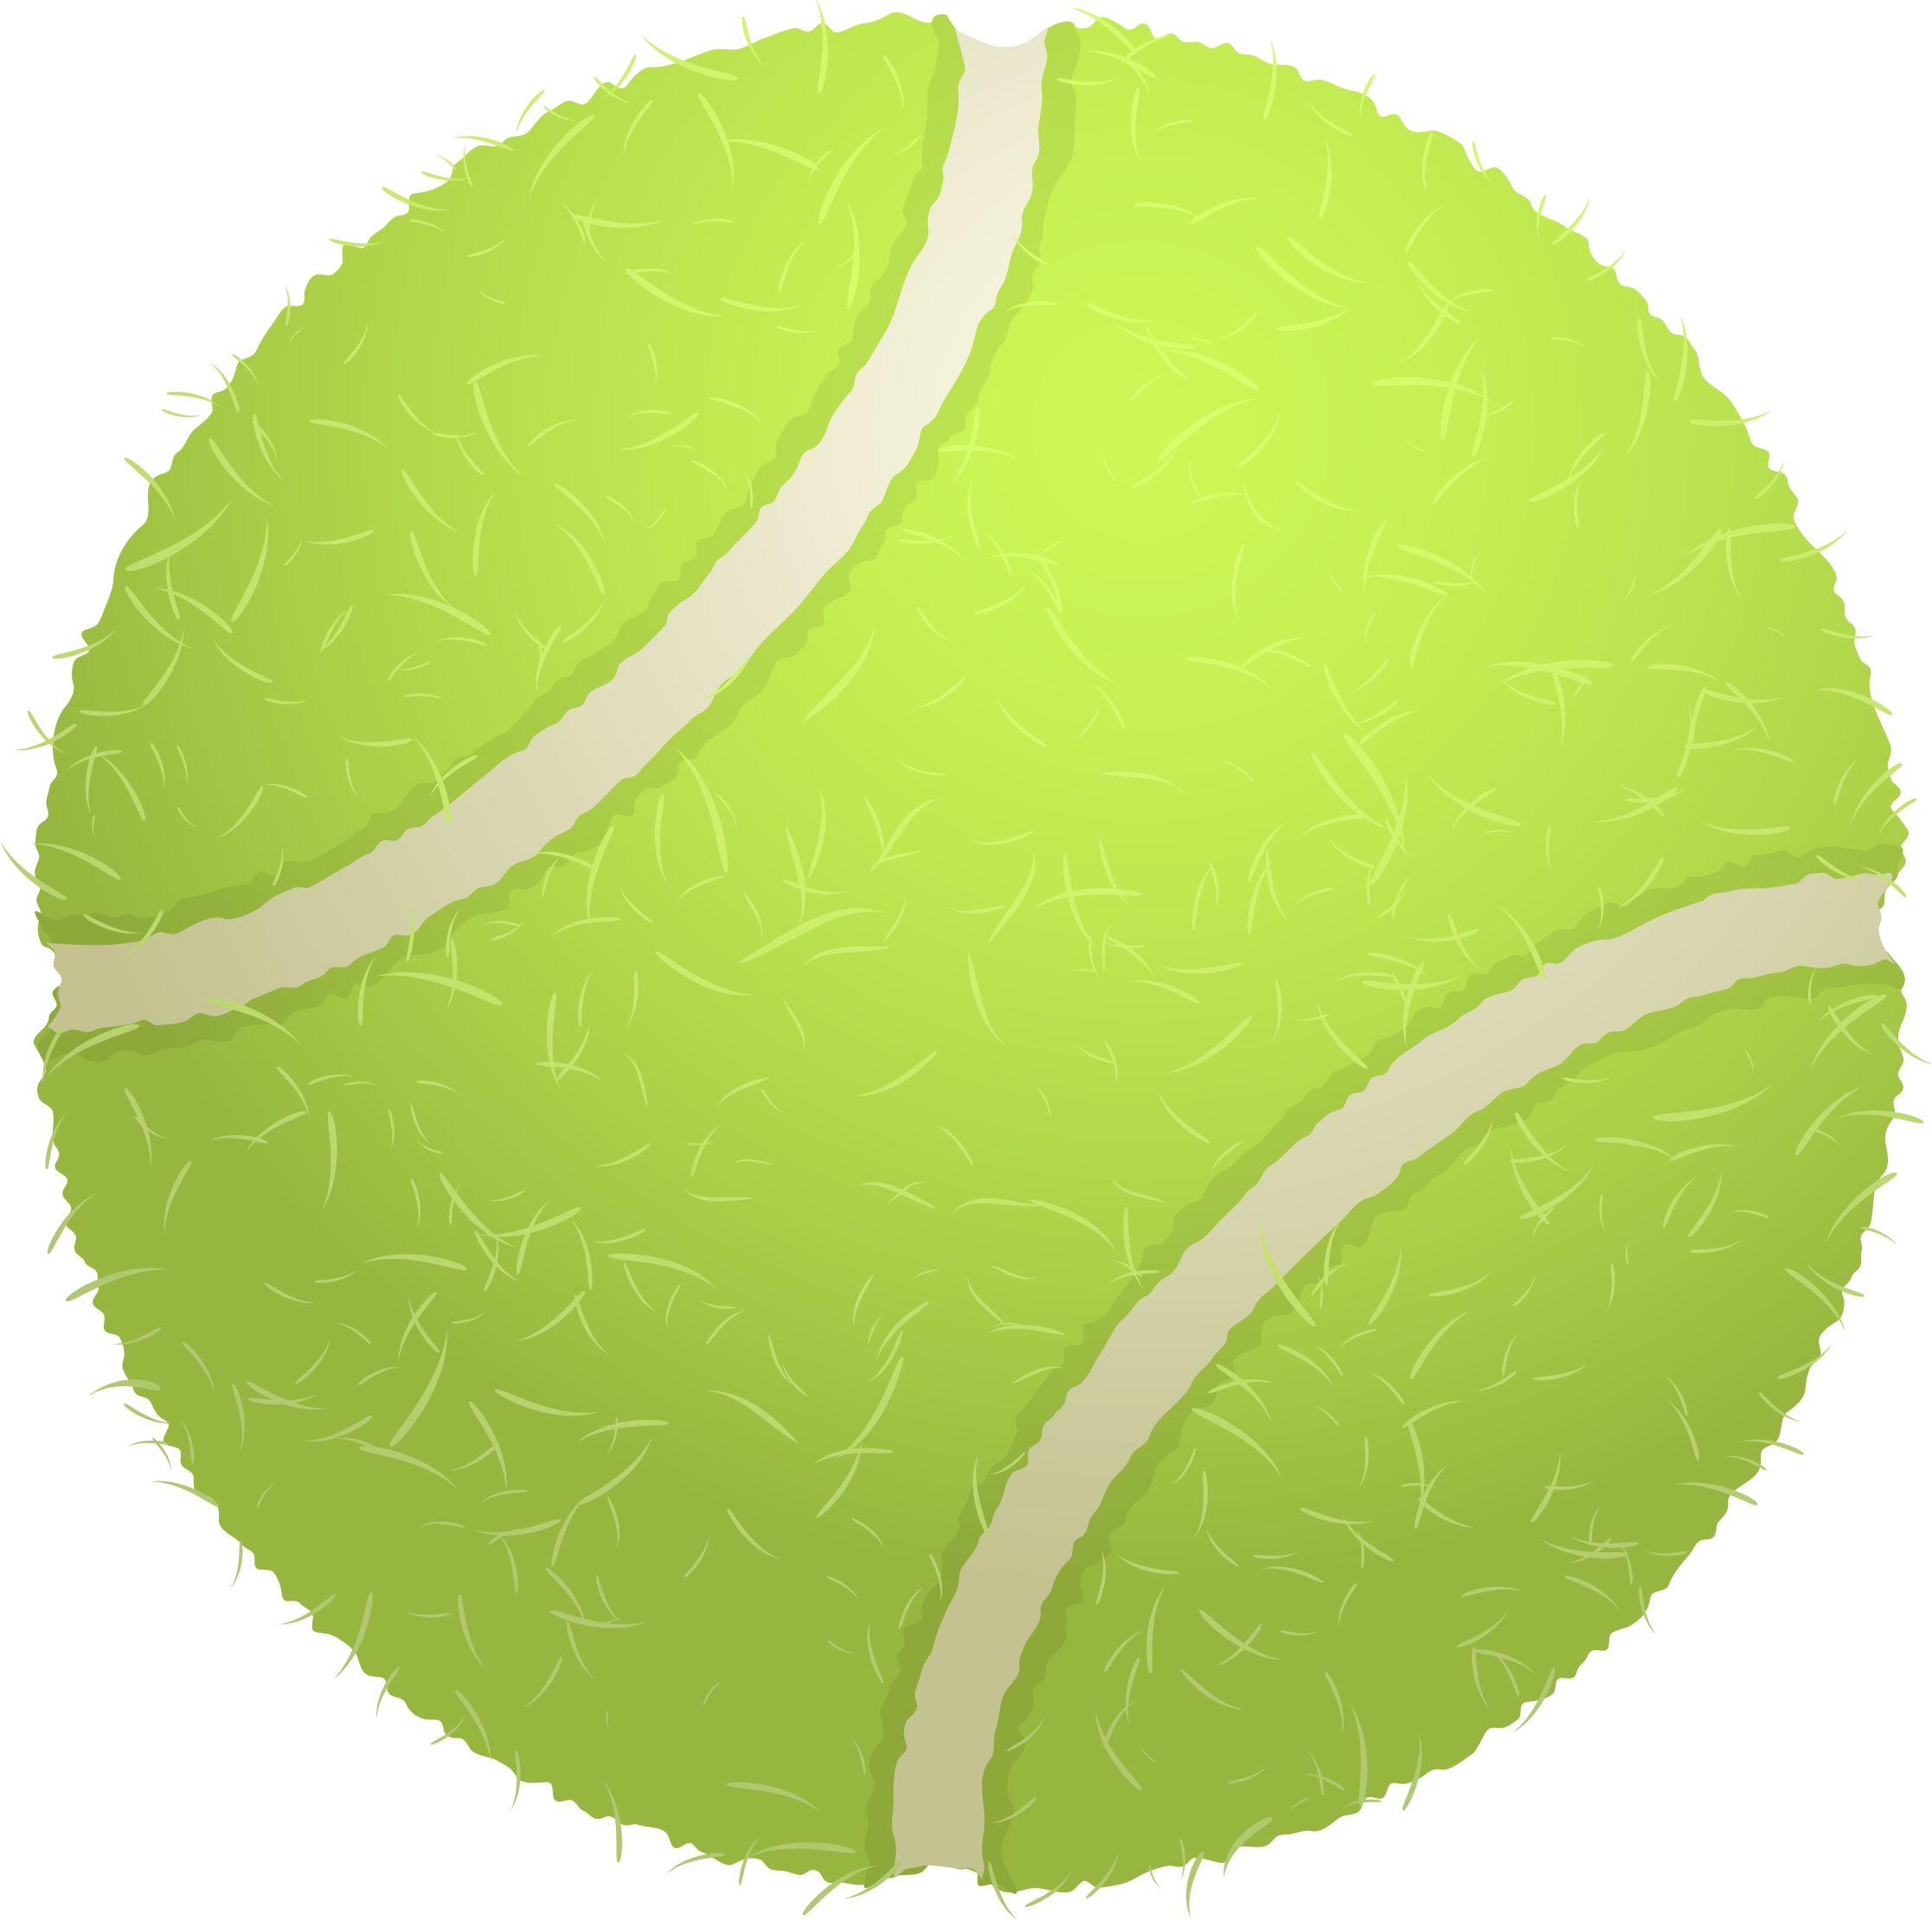 Ball clipart transparent background. Tennis png images dogs